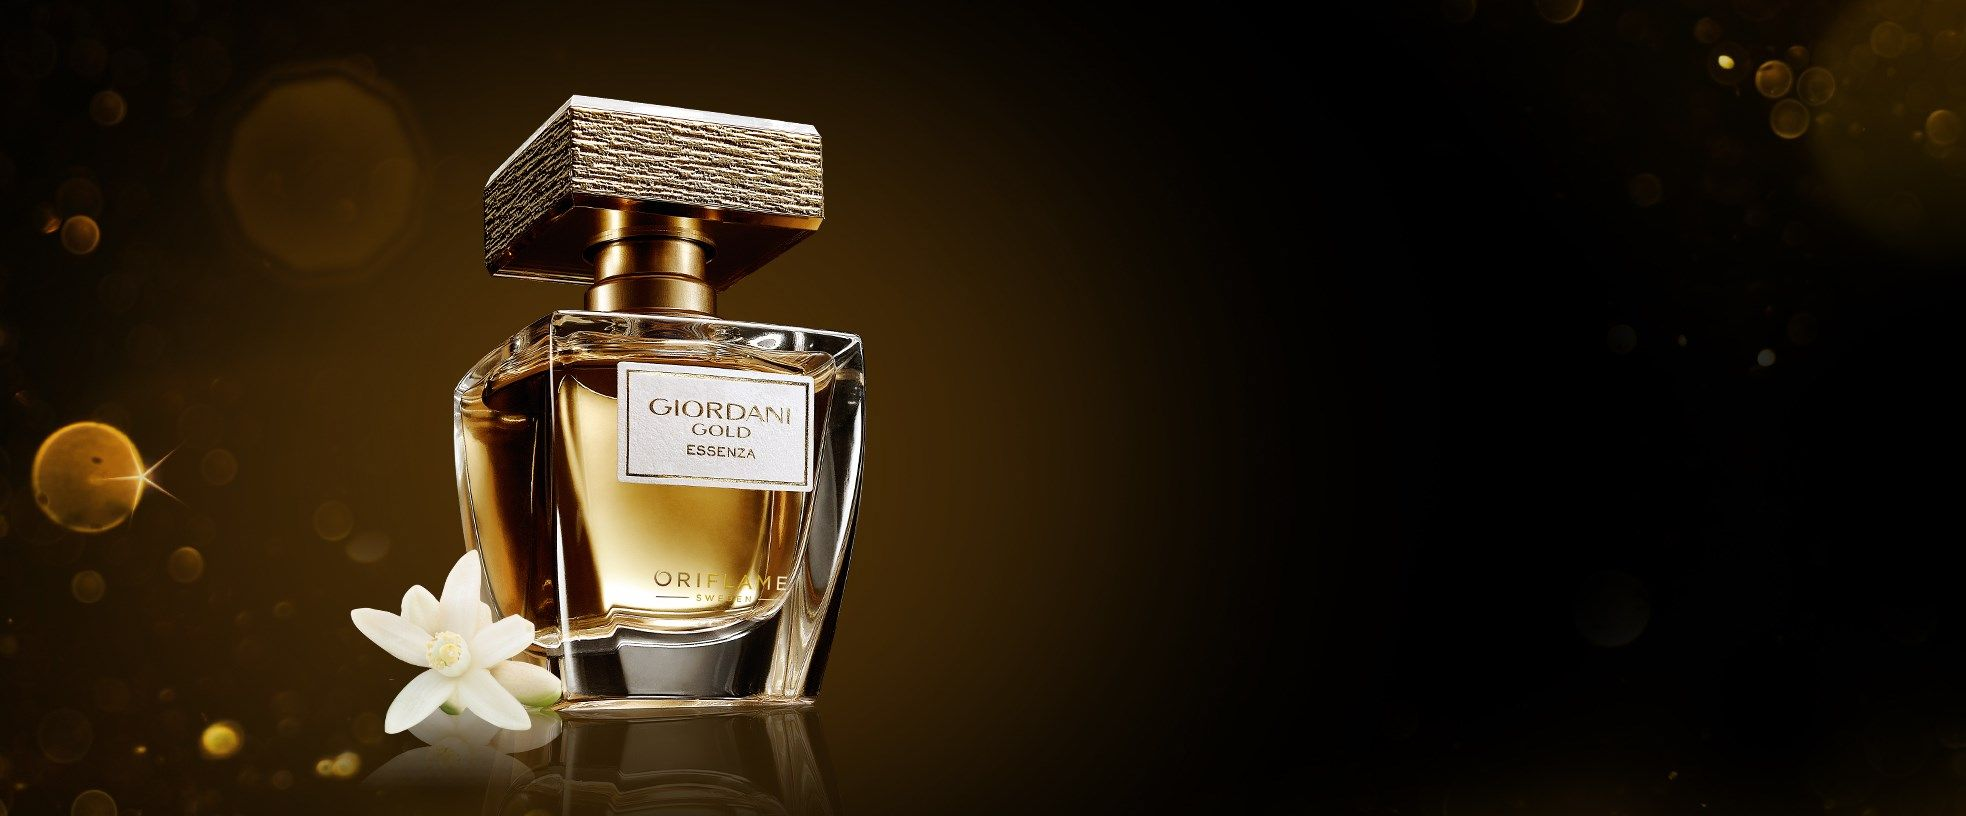 Giordani Gold Essenza Parfum With 24k Gold Plated Cap Gives You A